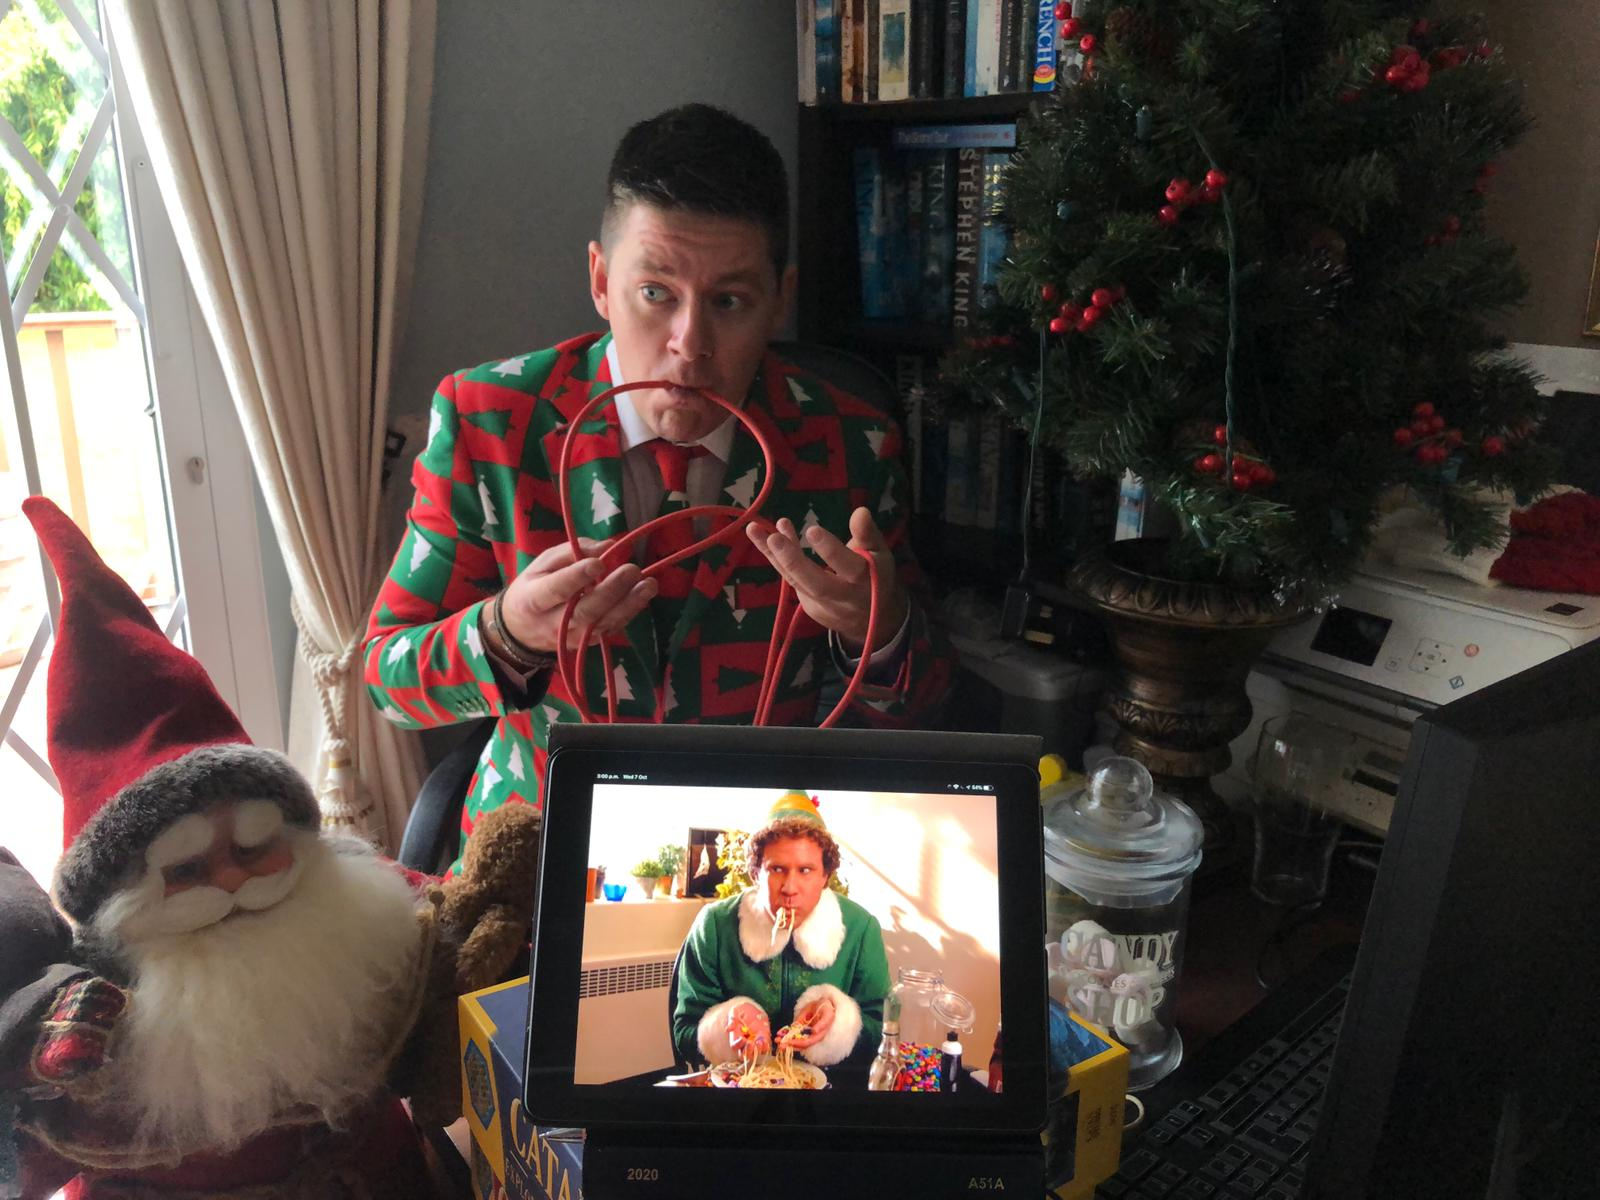 Delegate recreating a famous photo from the movie Elf, as he plays Orangeworks remote corporate Christmas party games.